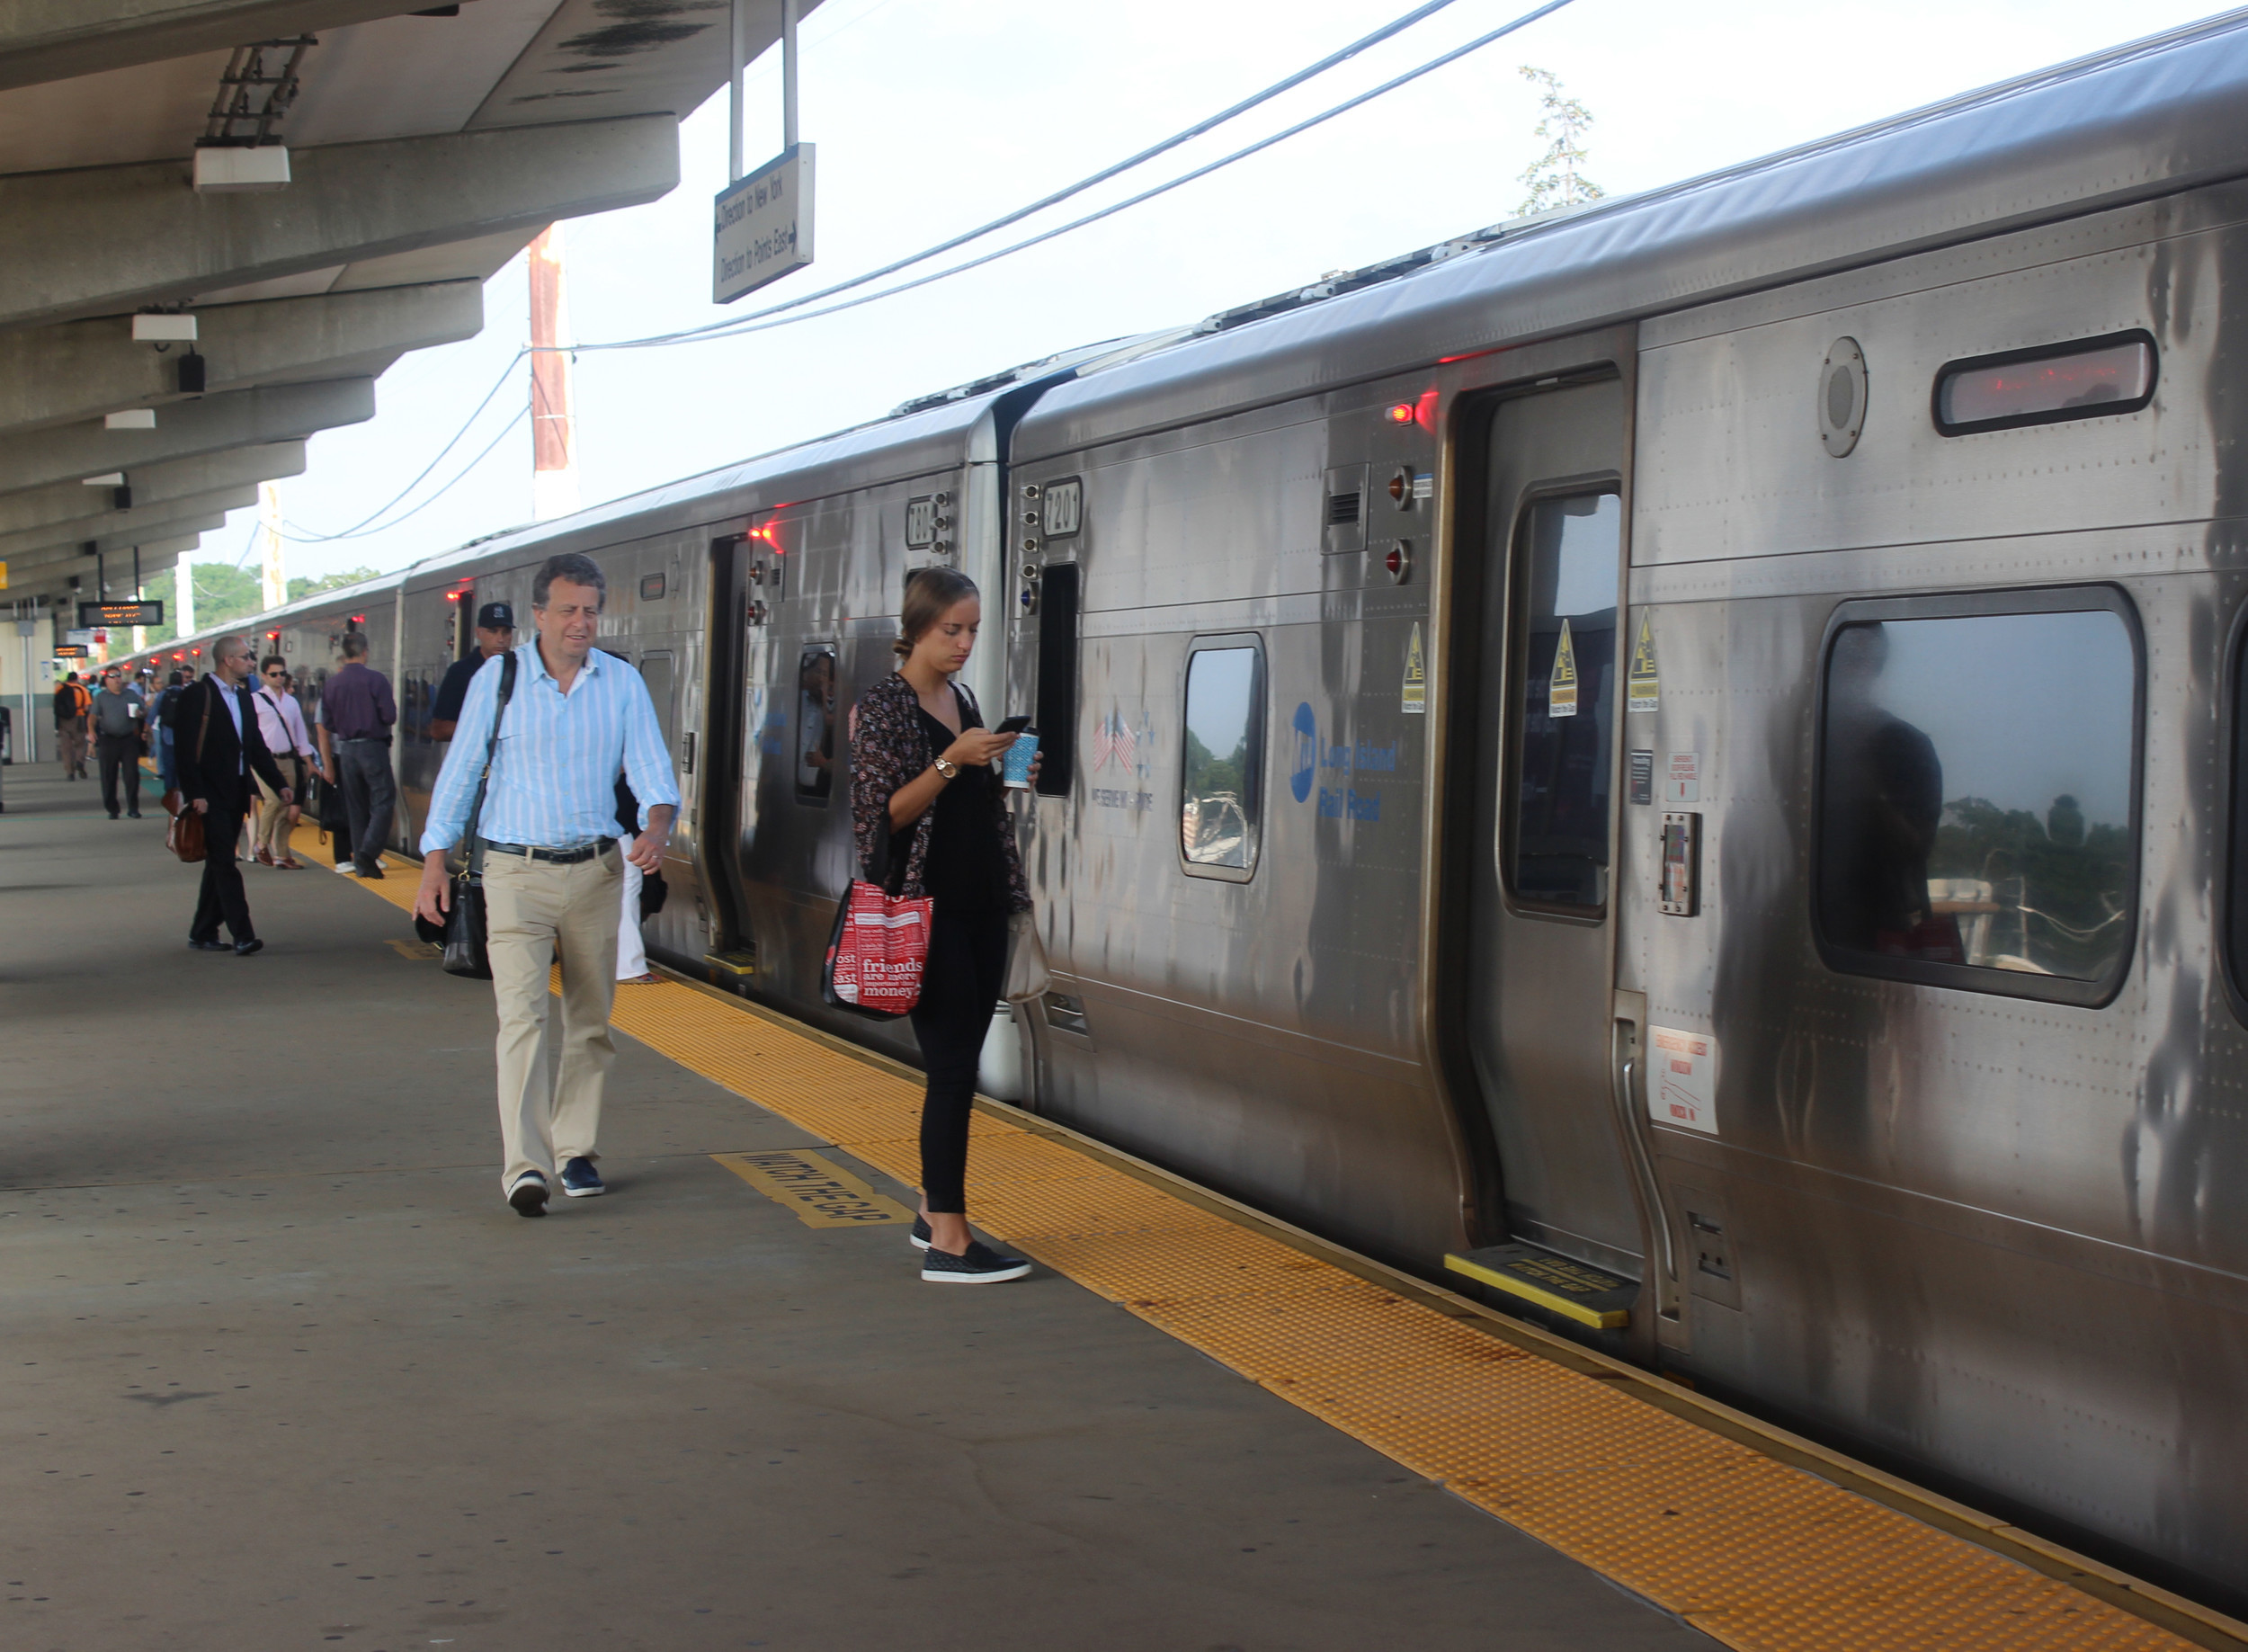 Commuters at the Bellmore LIRR station said they were unfazed by the schedule changes necessitated by the infrastructure improvement project at Penn Station, but remain cautious.